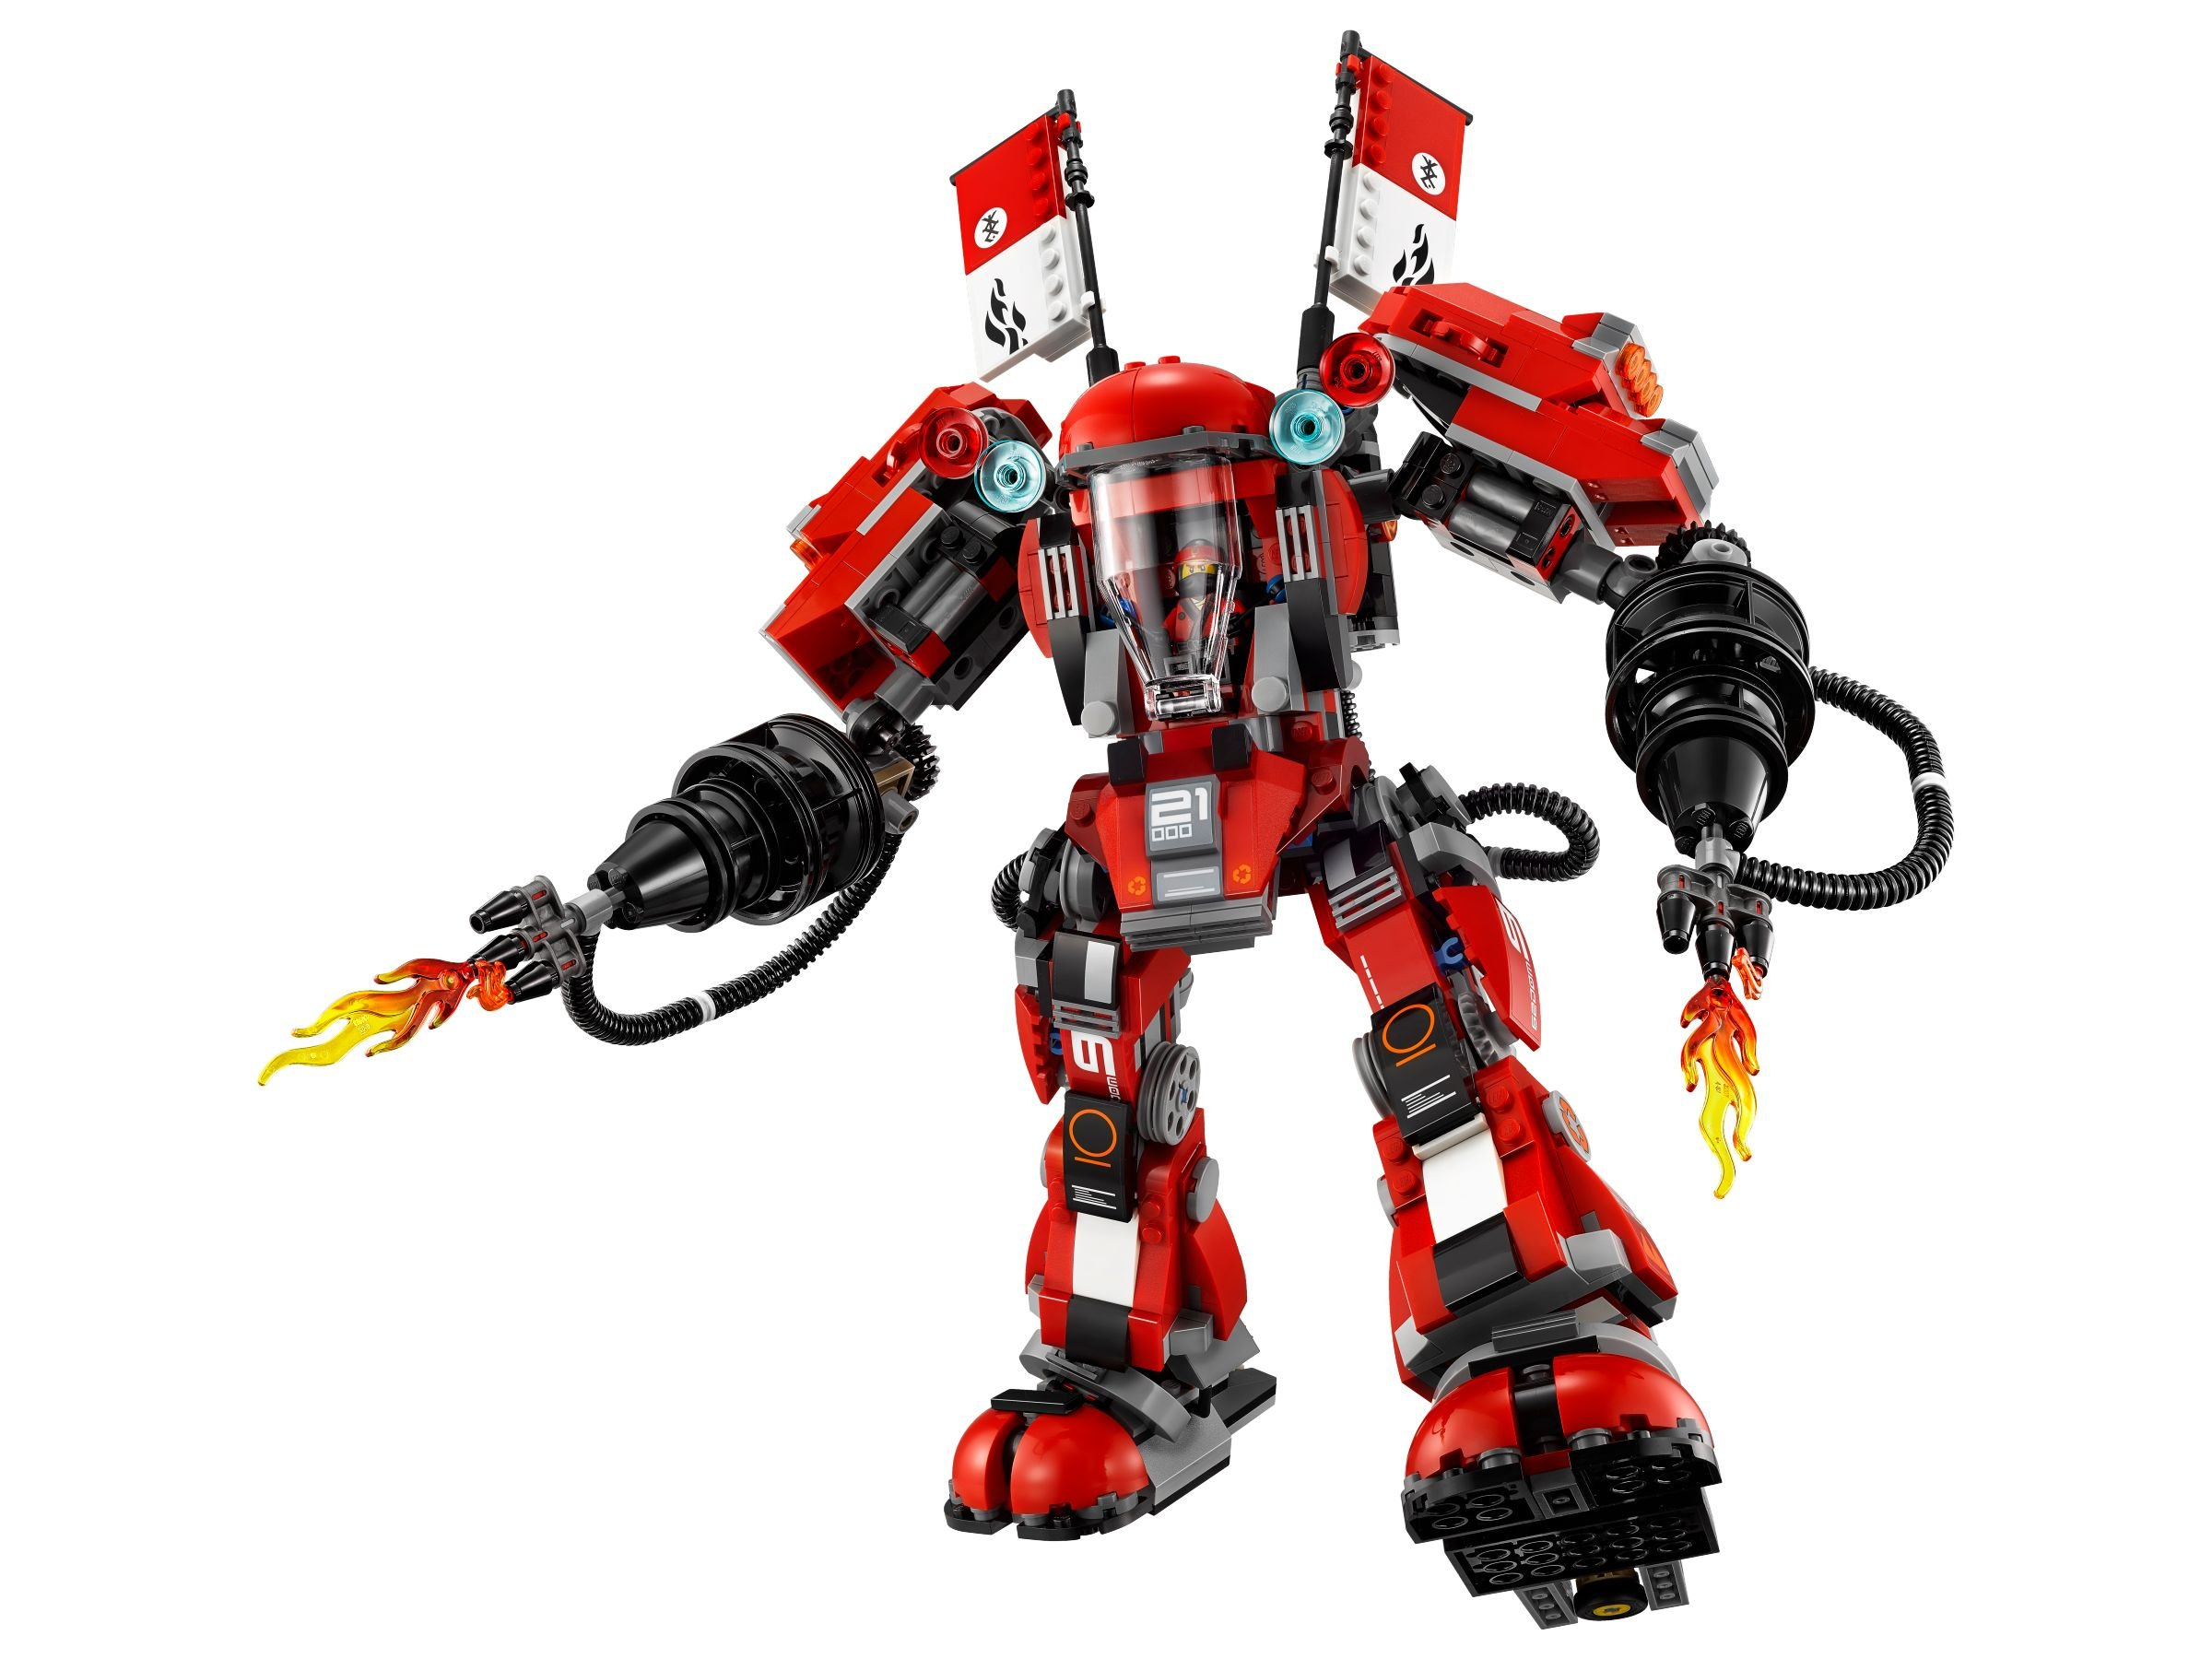 LEGO The LEGO Ninjago Movie 70615 Kai's Feuer-Mech LEGO_70615_alt2.jpg